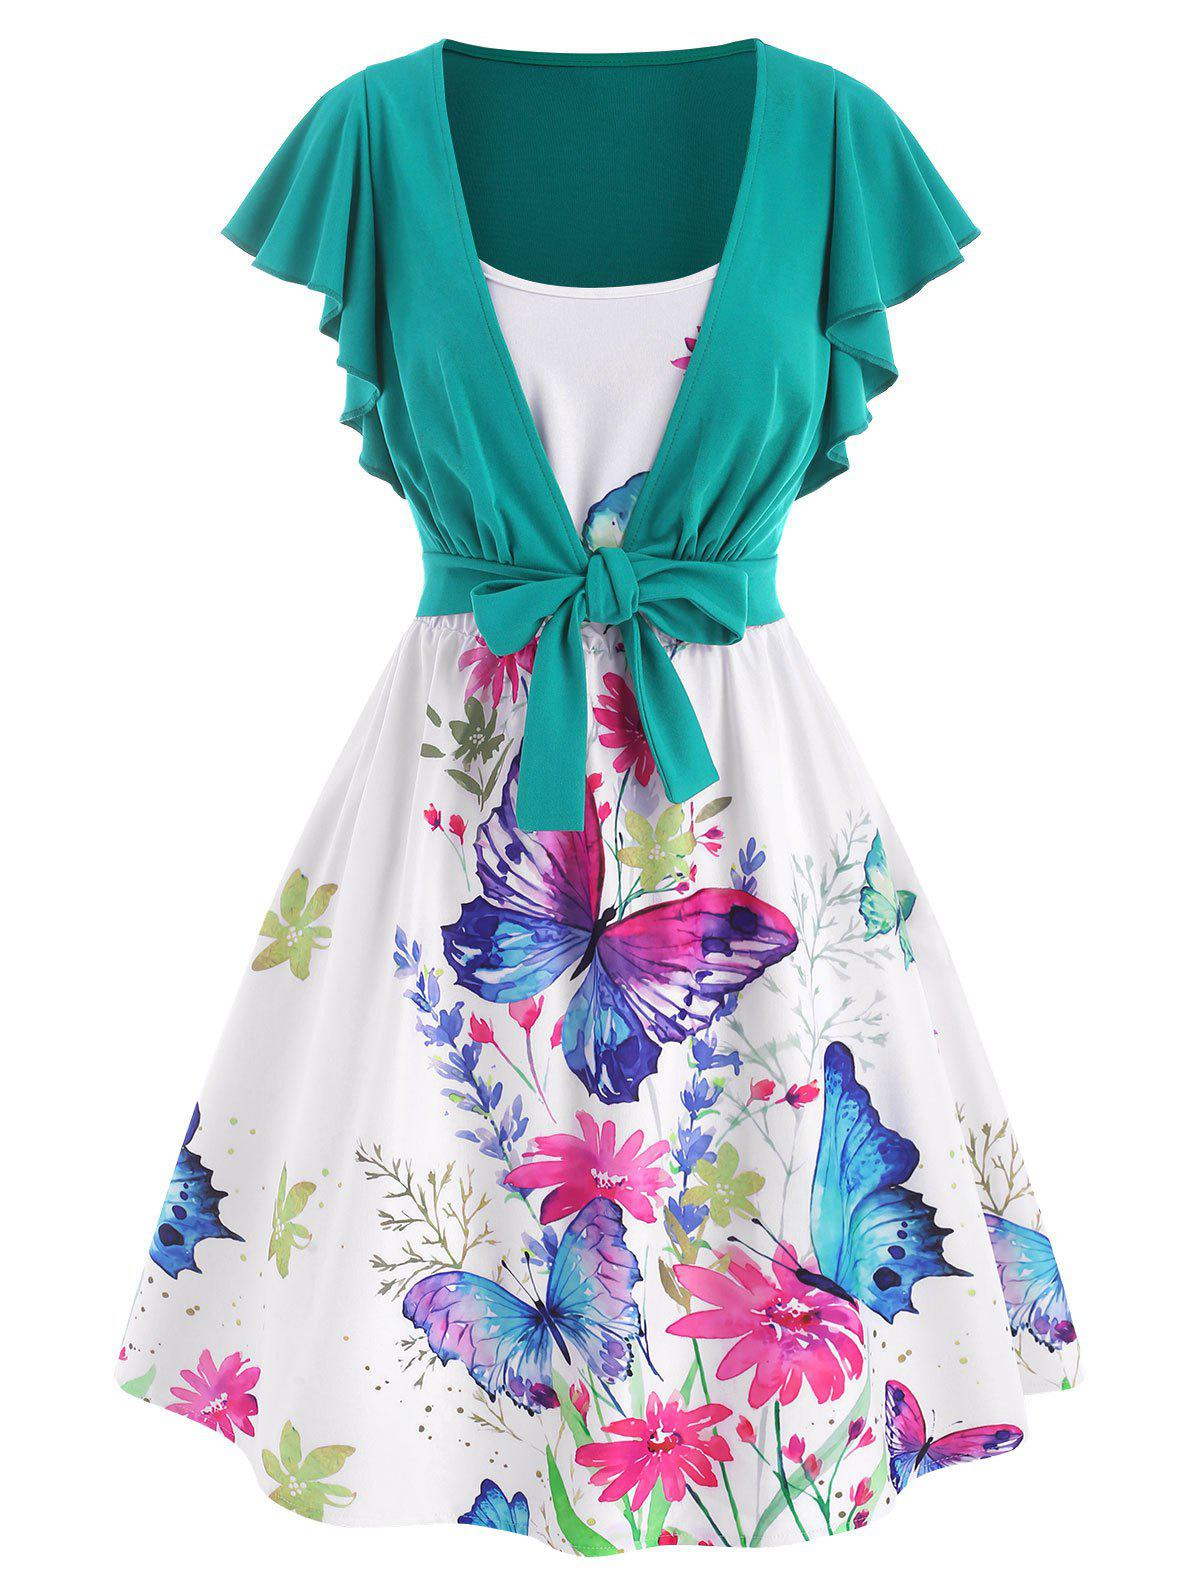 Flower Butterfly Print Cami Dress with Tie Front T Shirt - multicolor XL